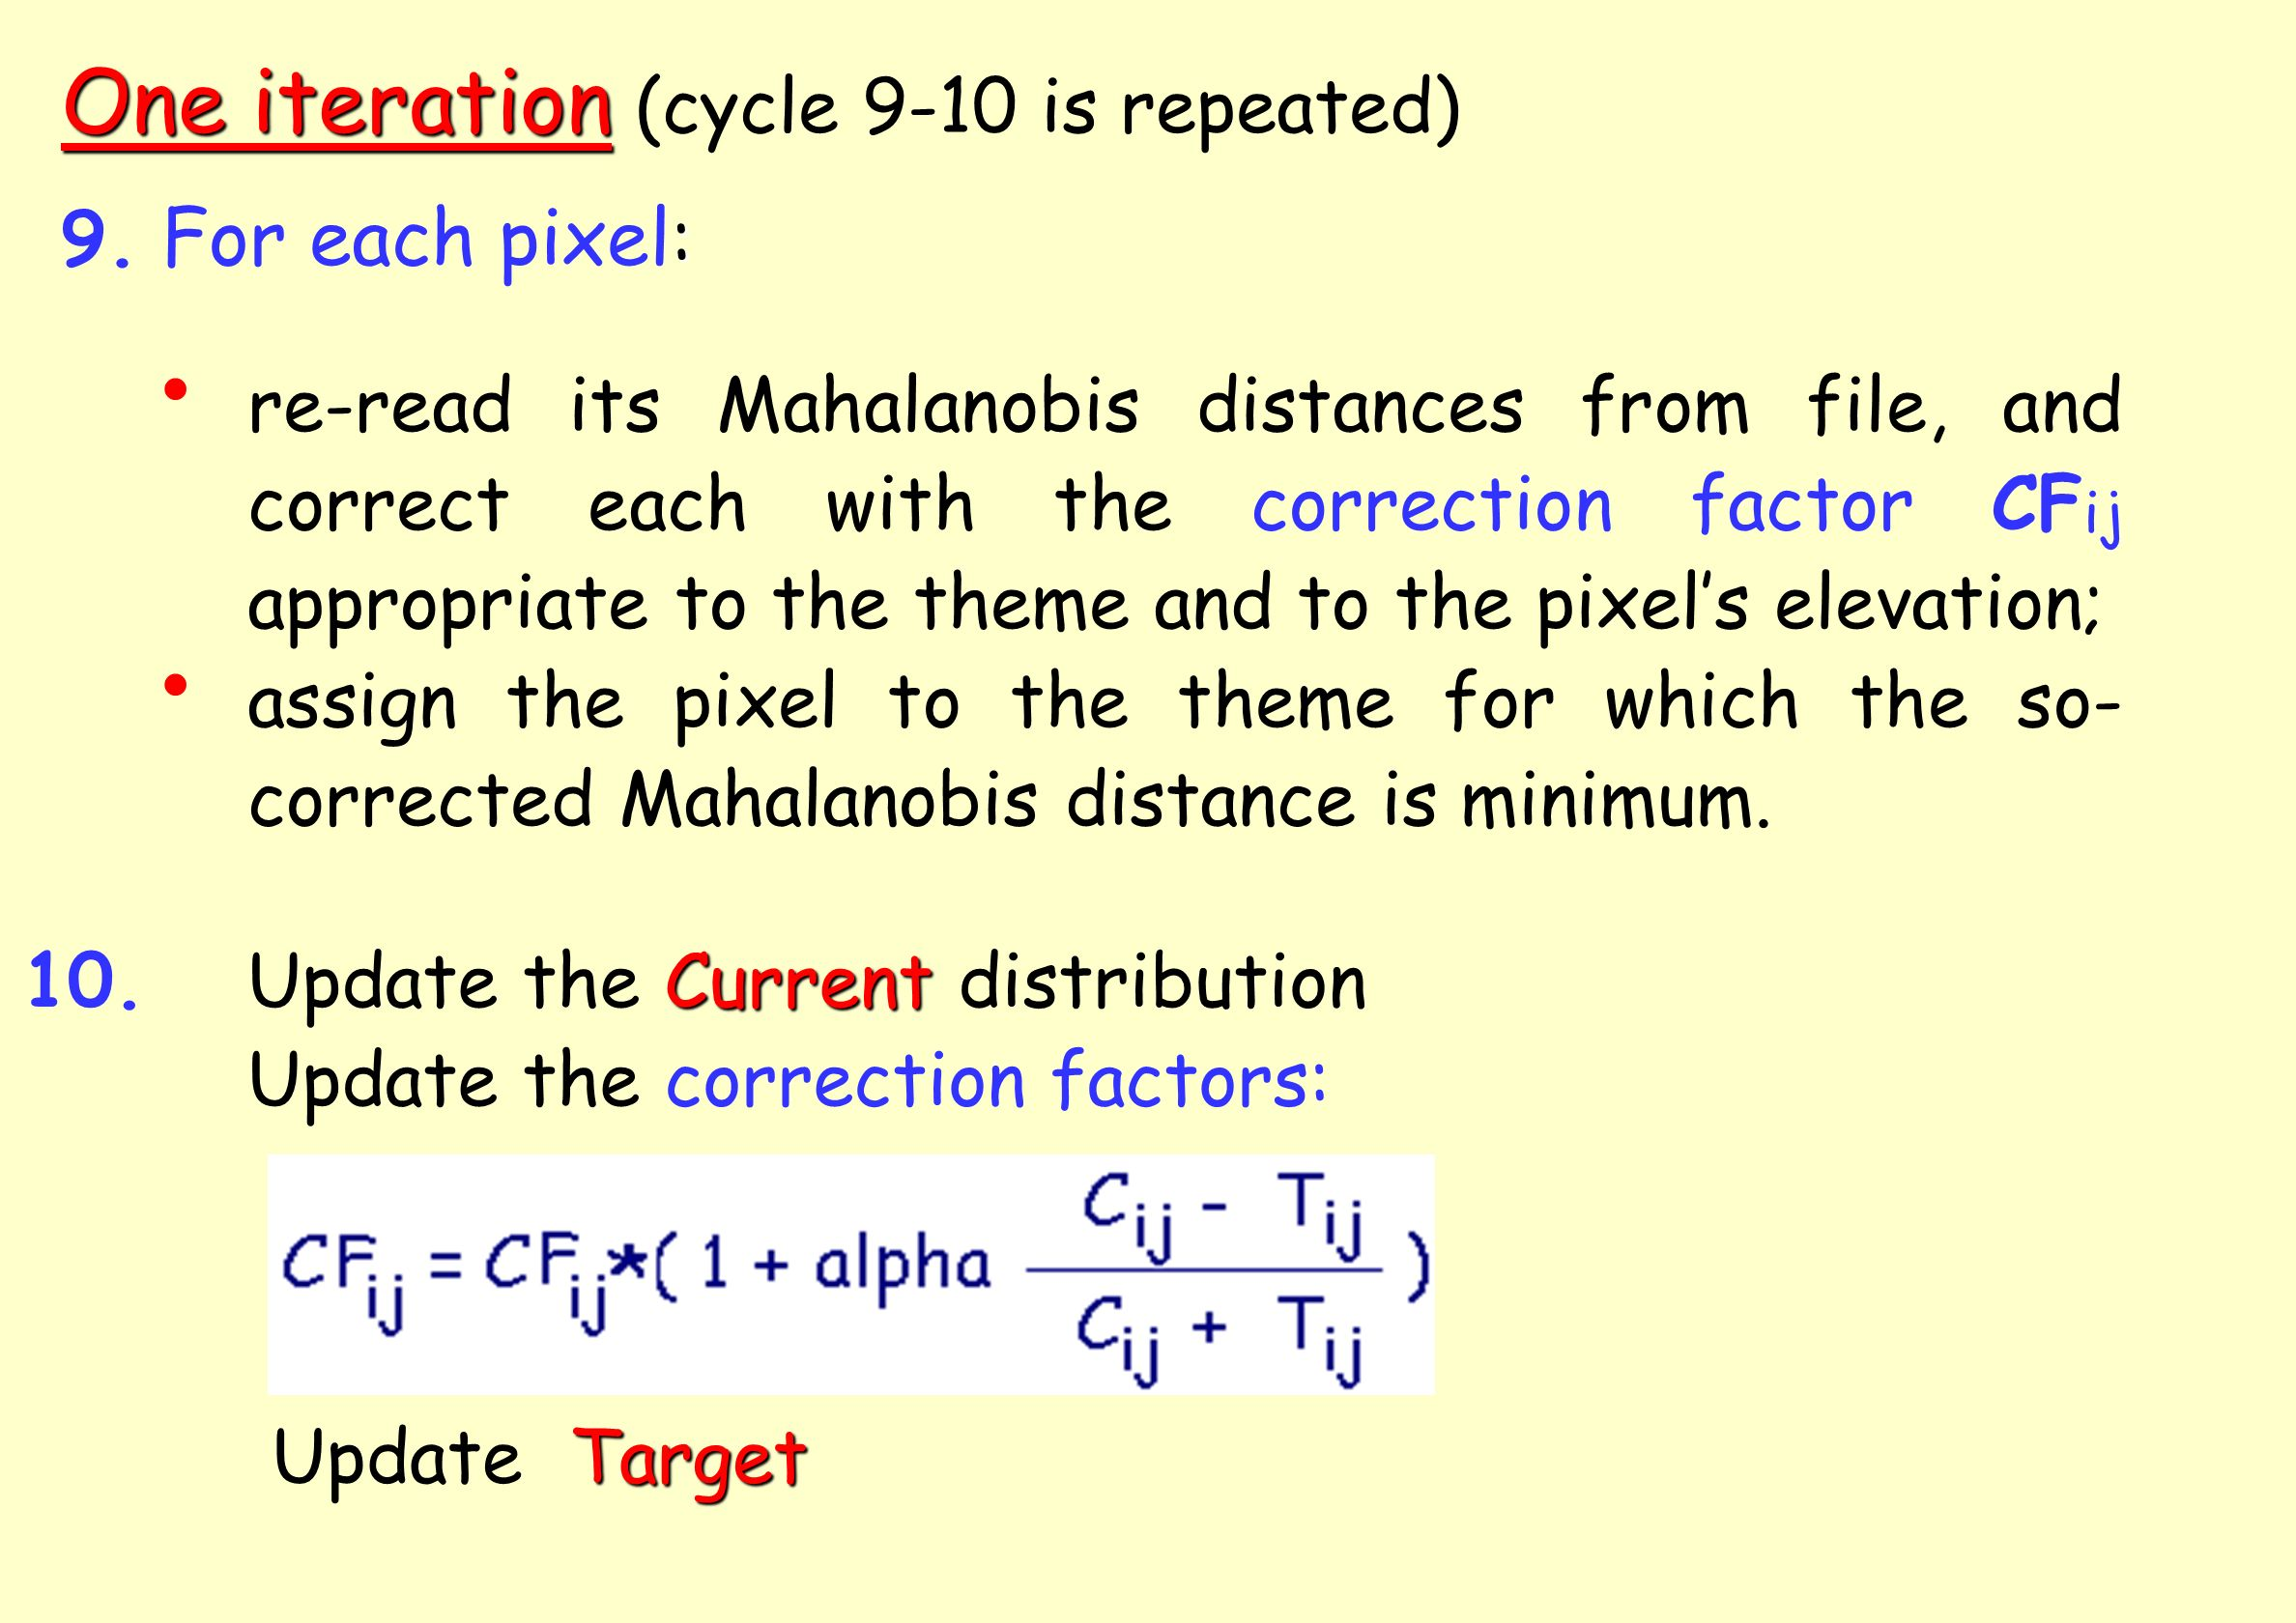 One iteration One iteration (cycle 9-10 is repeated) re-read its Mahalanobis distances from file, and correct each with the correction factor CF ij ap